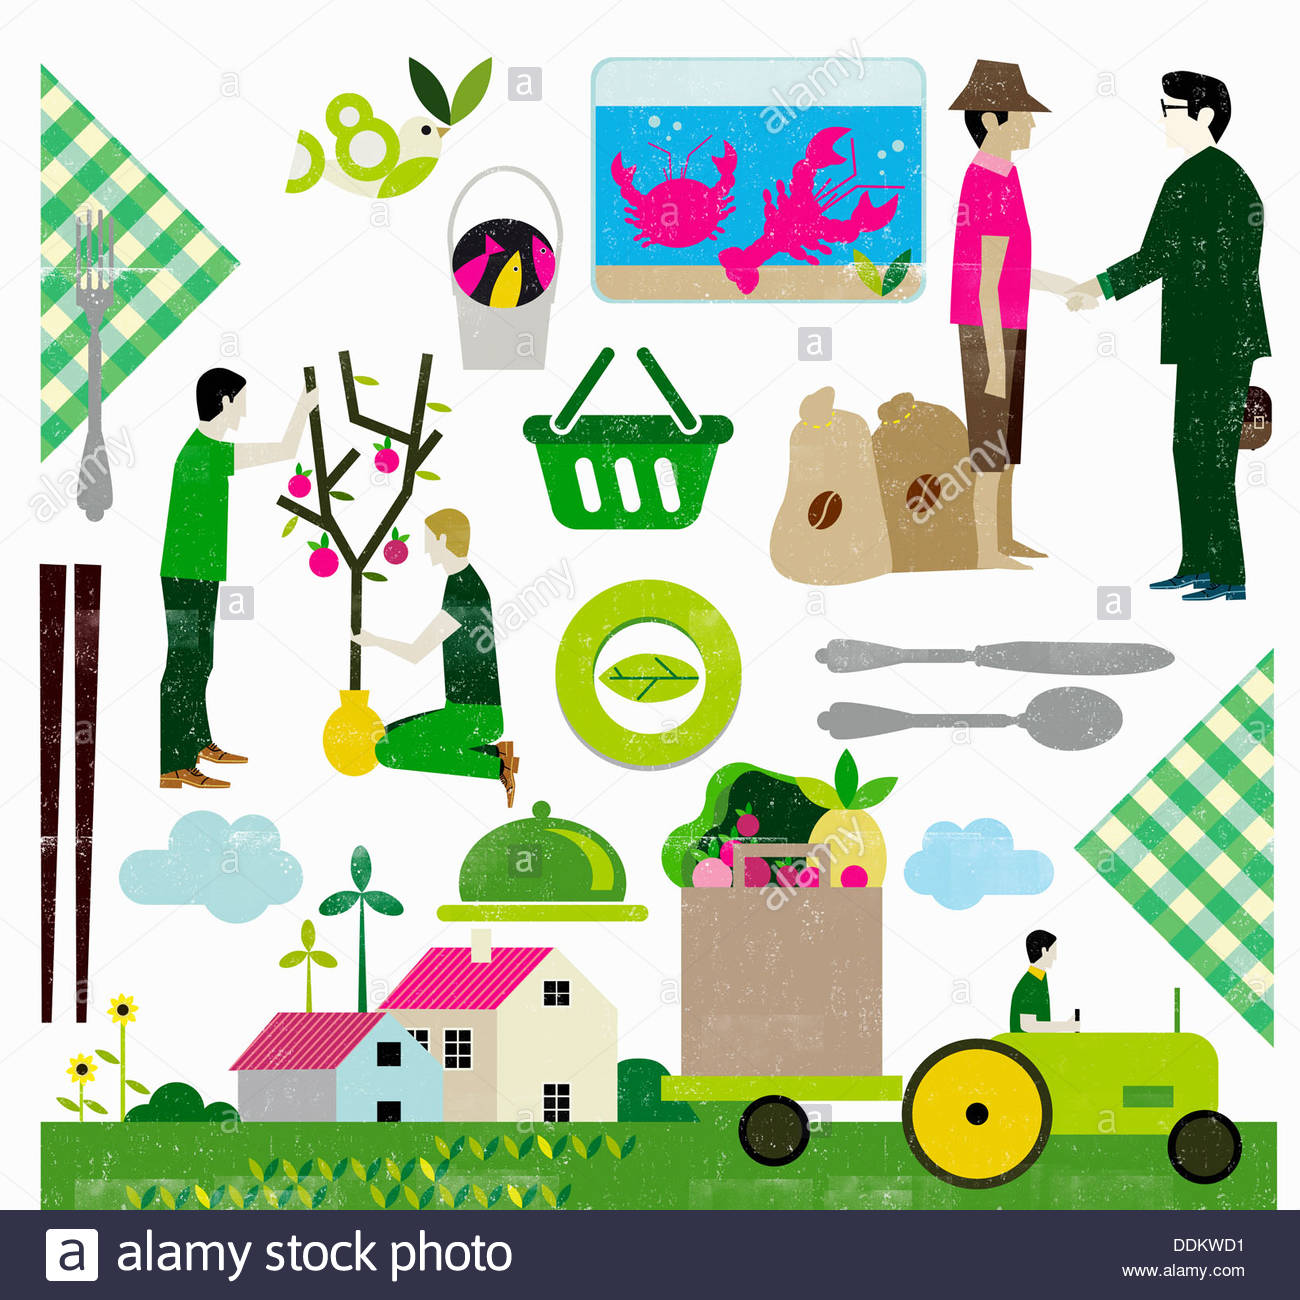 Eco-friendly food production Stock Photo